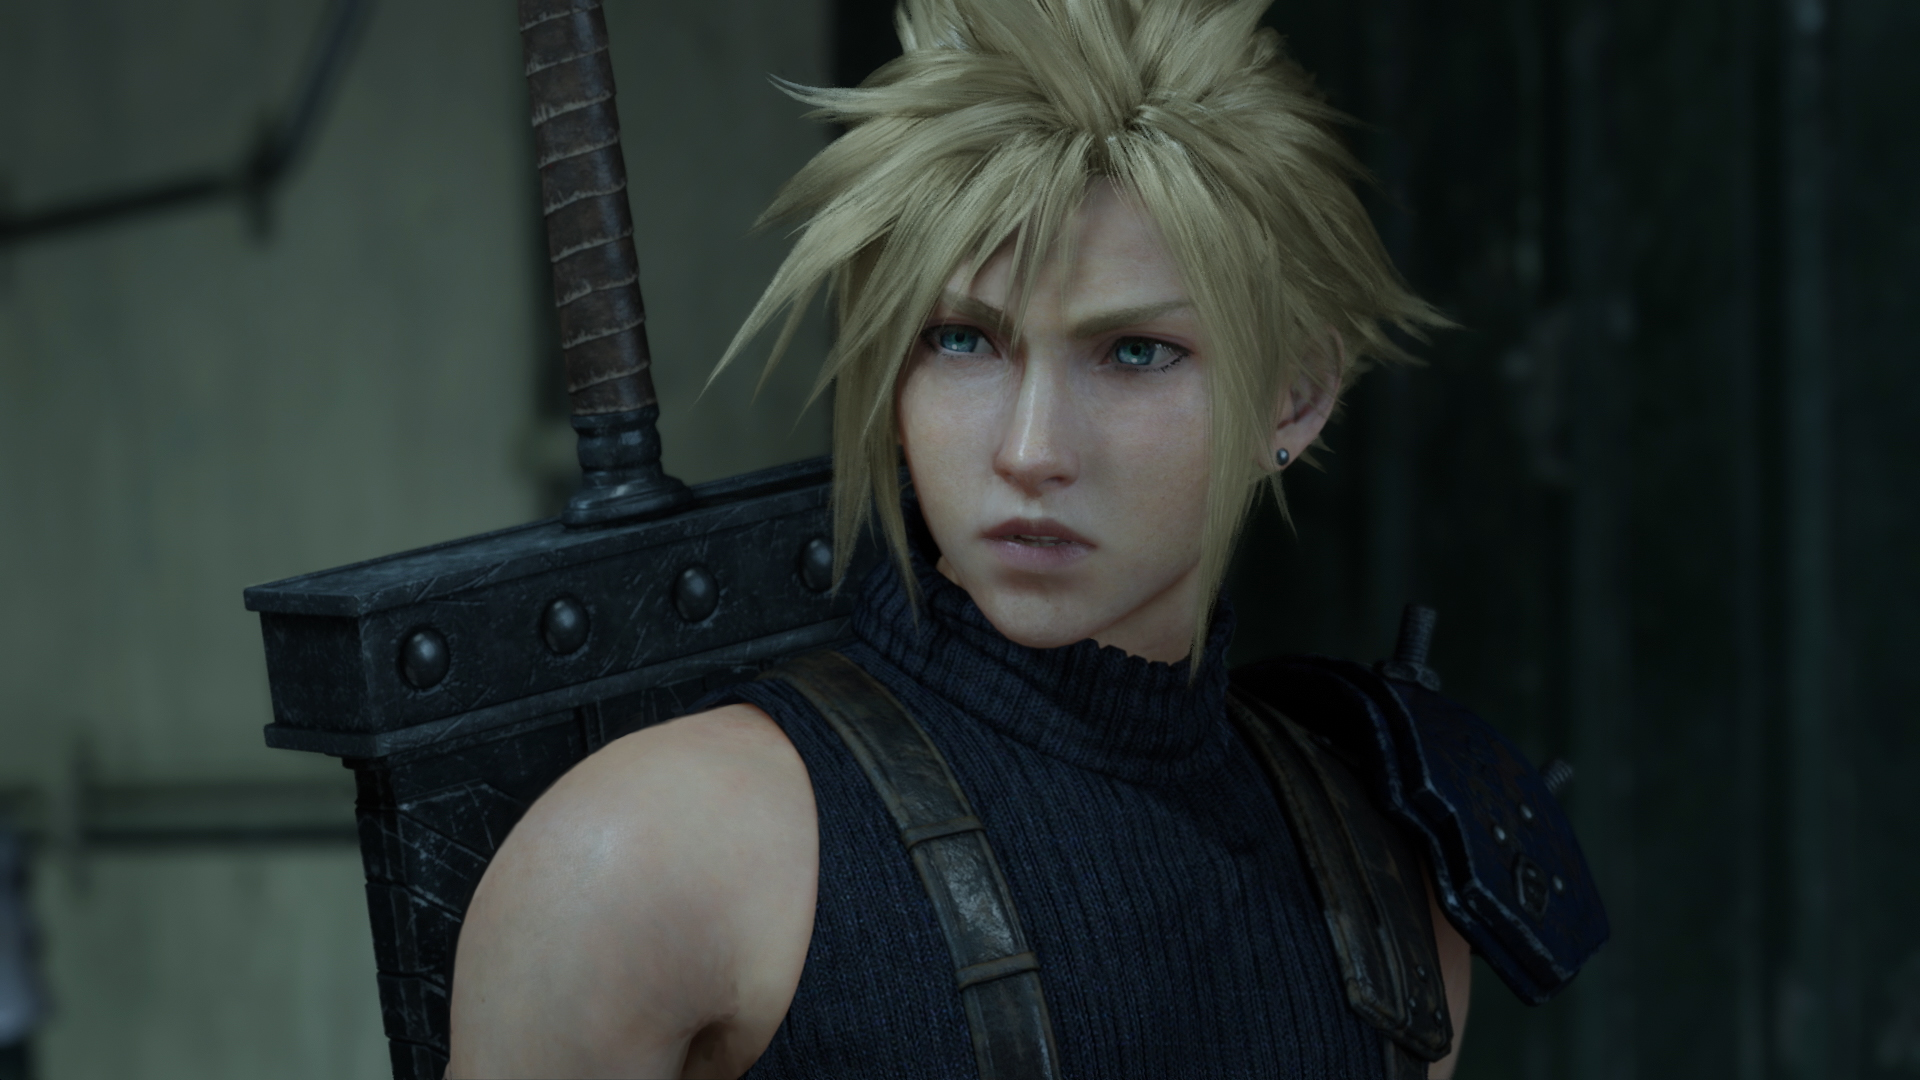 Some Familiar Faces Return in Final Fantasy VII Remake's TGS Trailer